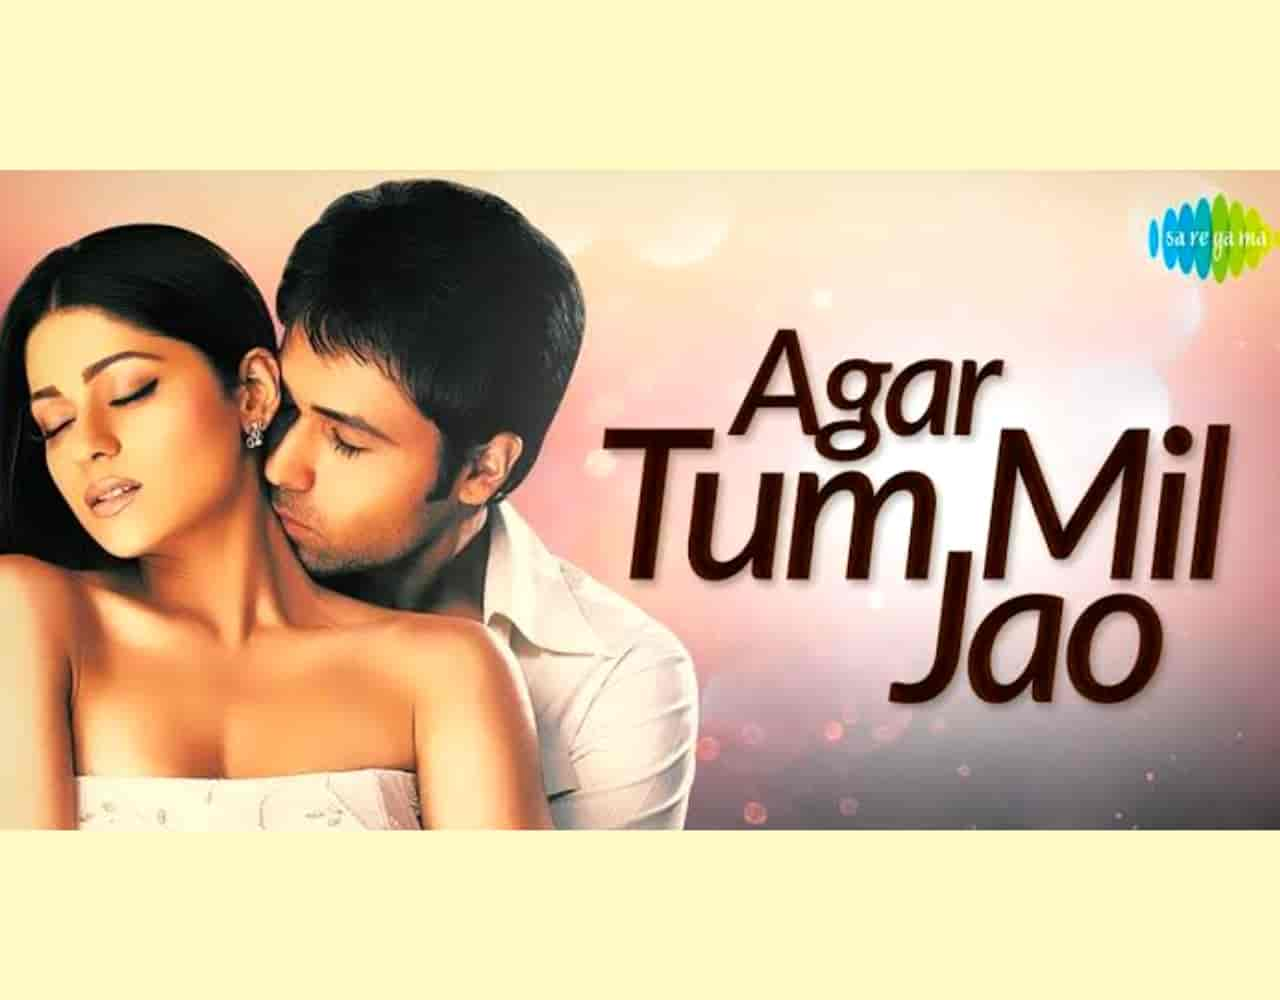 Agar Tum mil jao Hindi Romantic Song Lyrics, Sung By Shreya Ghoshal.